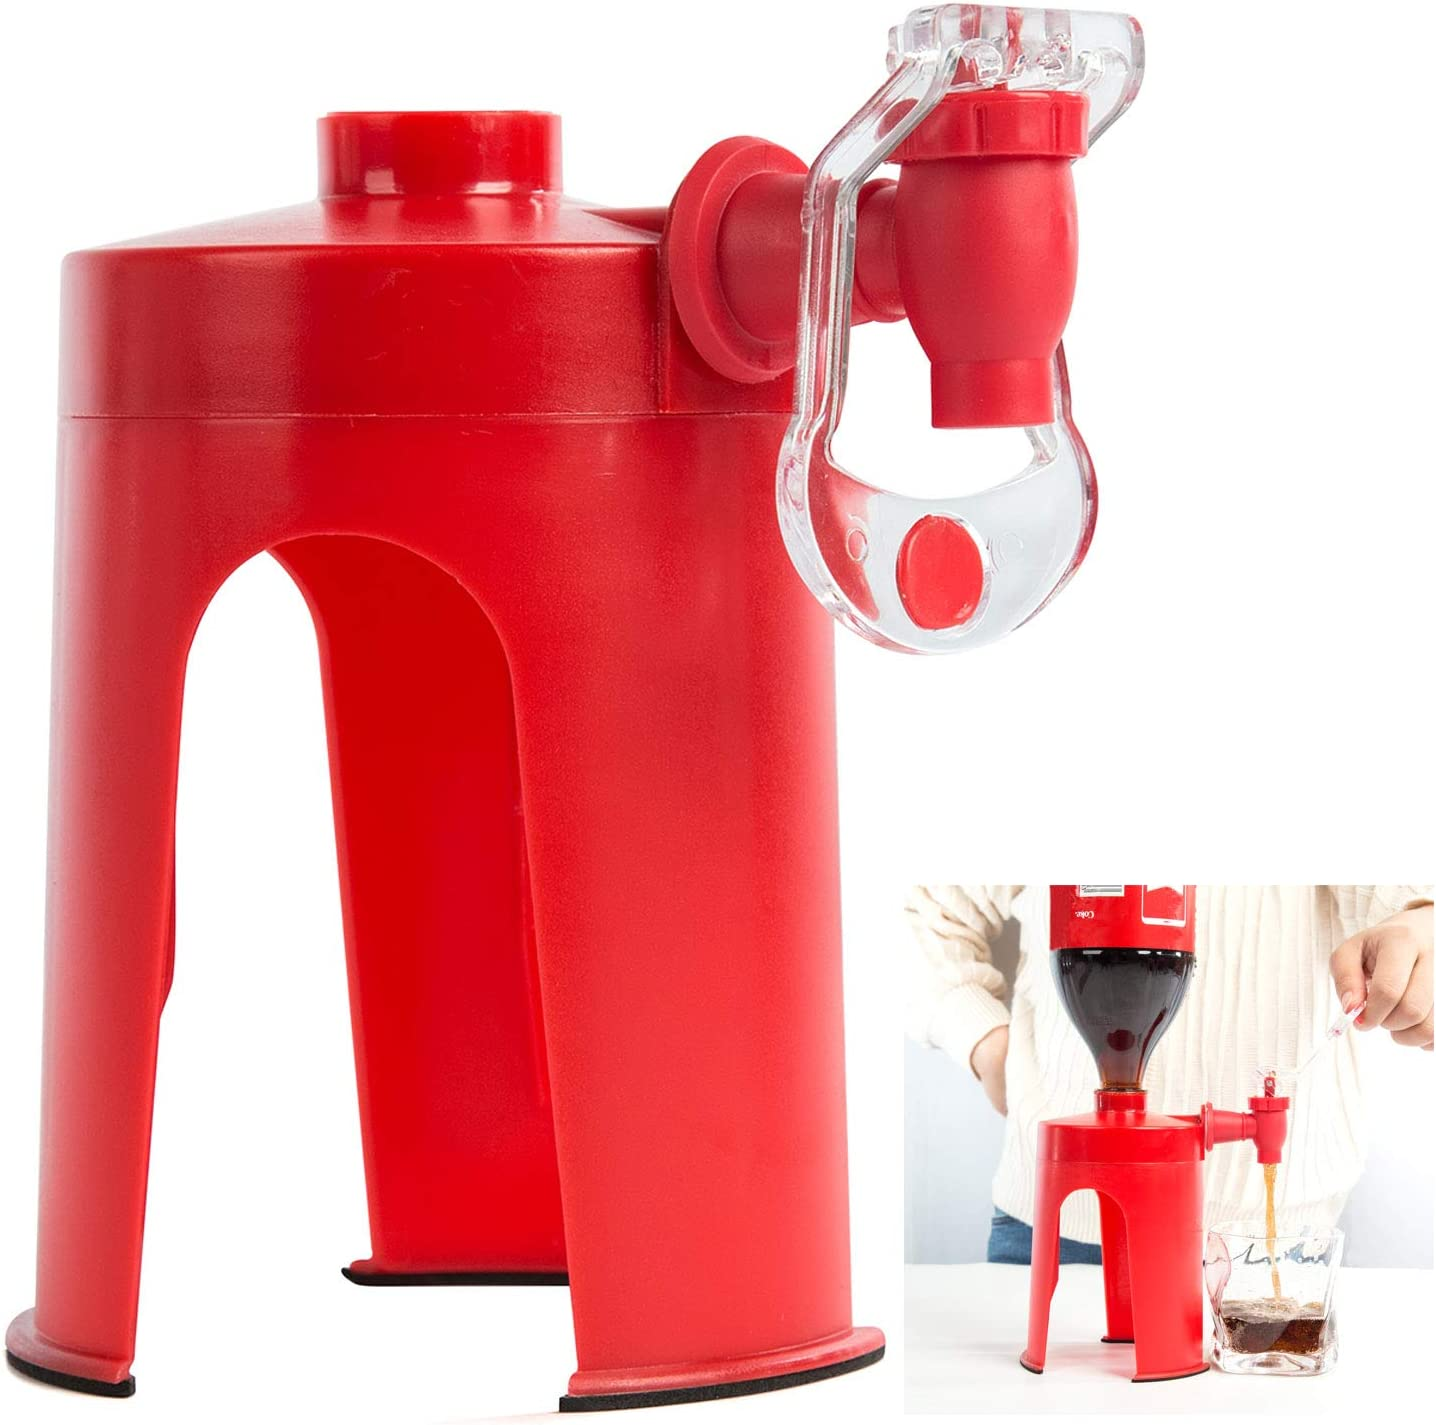 Beverage Dispenser/Drink Dispenser for Carbonated Drinks/Coca Cola/Sprite, Party Drink Dispenser/Drink Tool Mini Upside Down Drinking Fountains